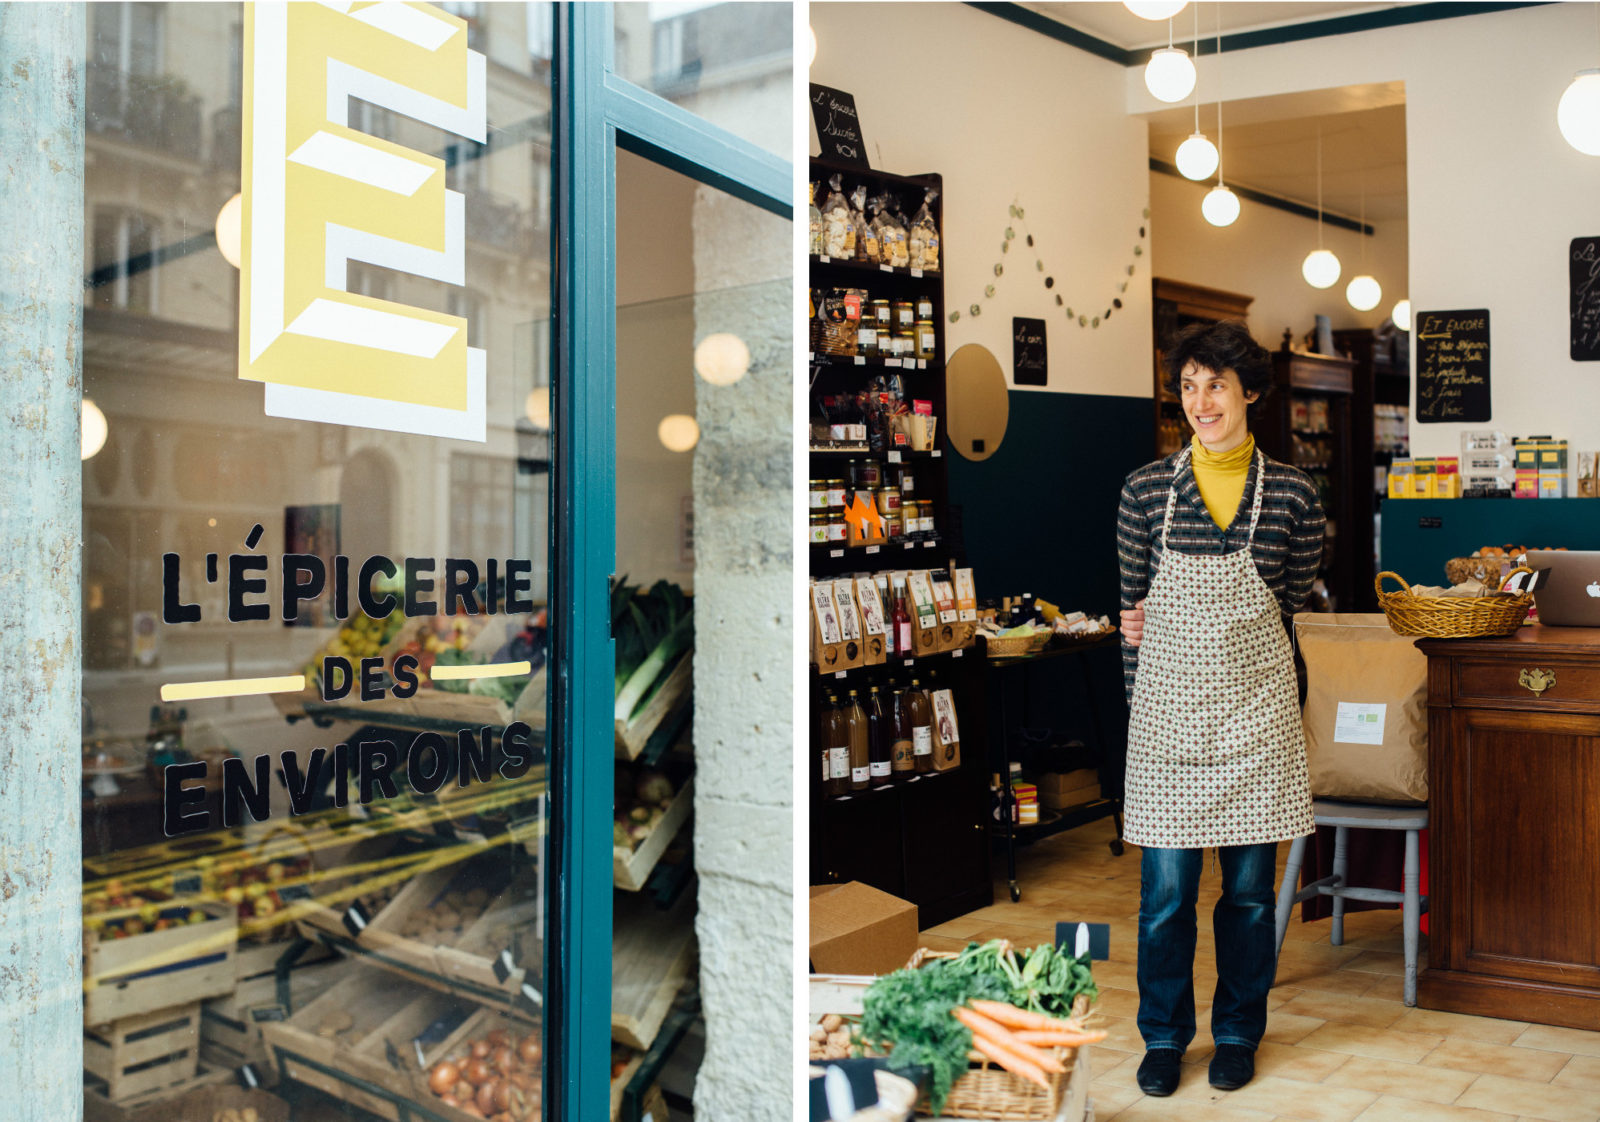 L'Epicerie des Environs: Local Grocery in Paris' 18th Arrondissement